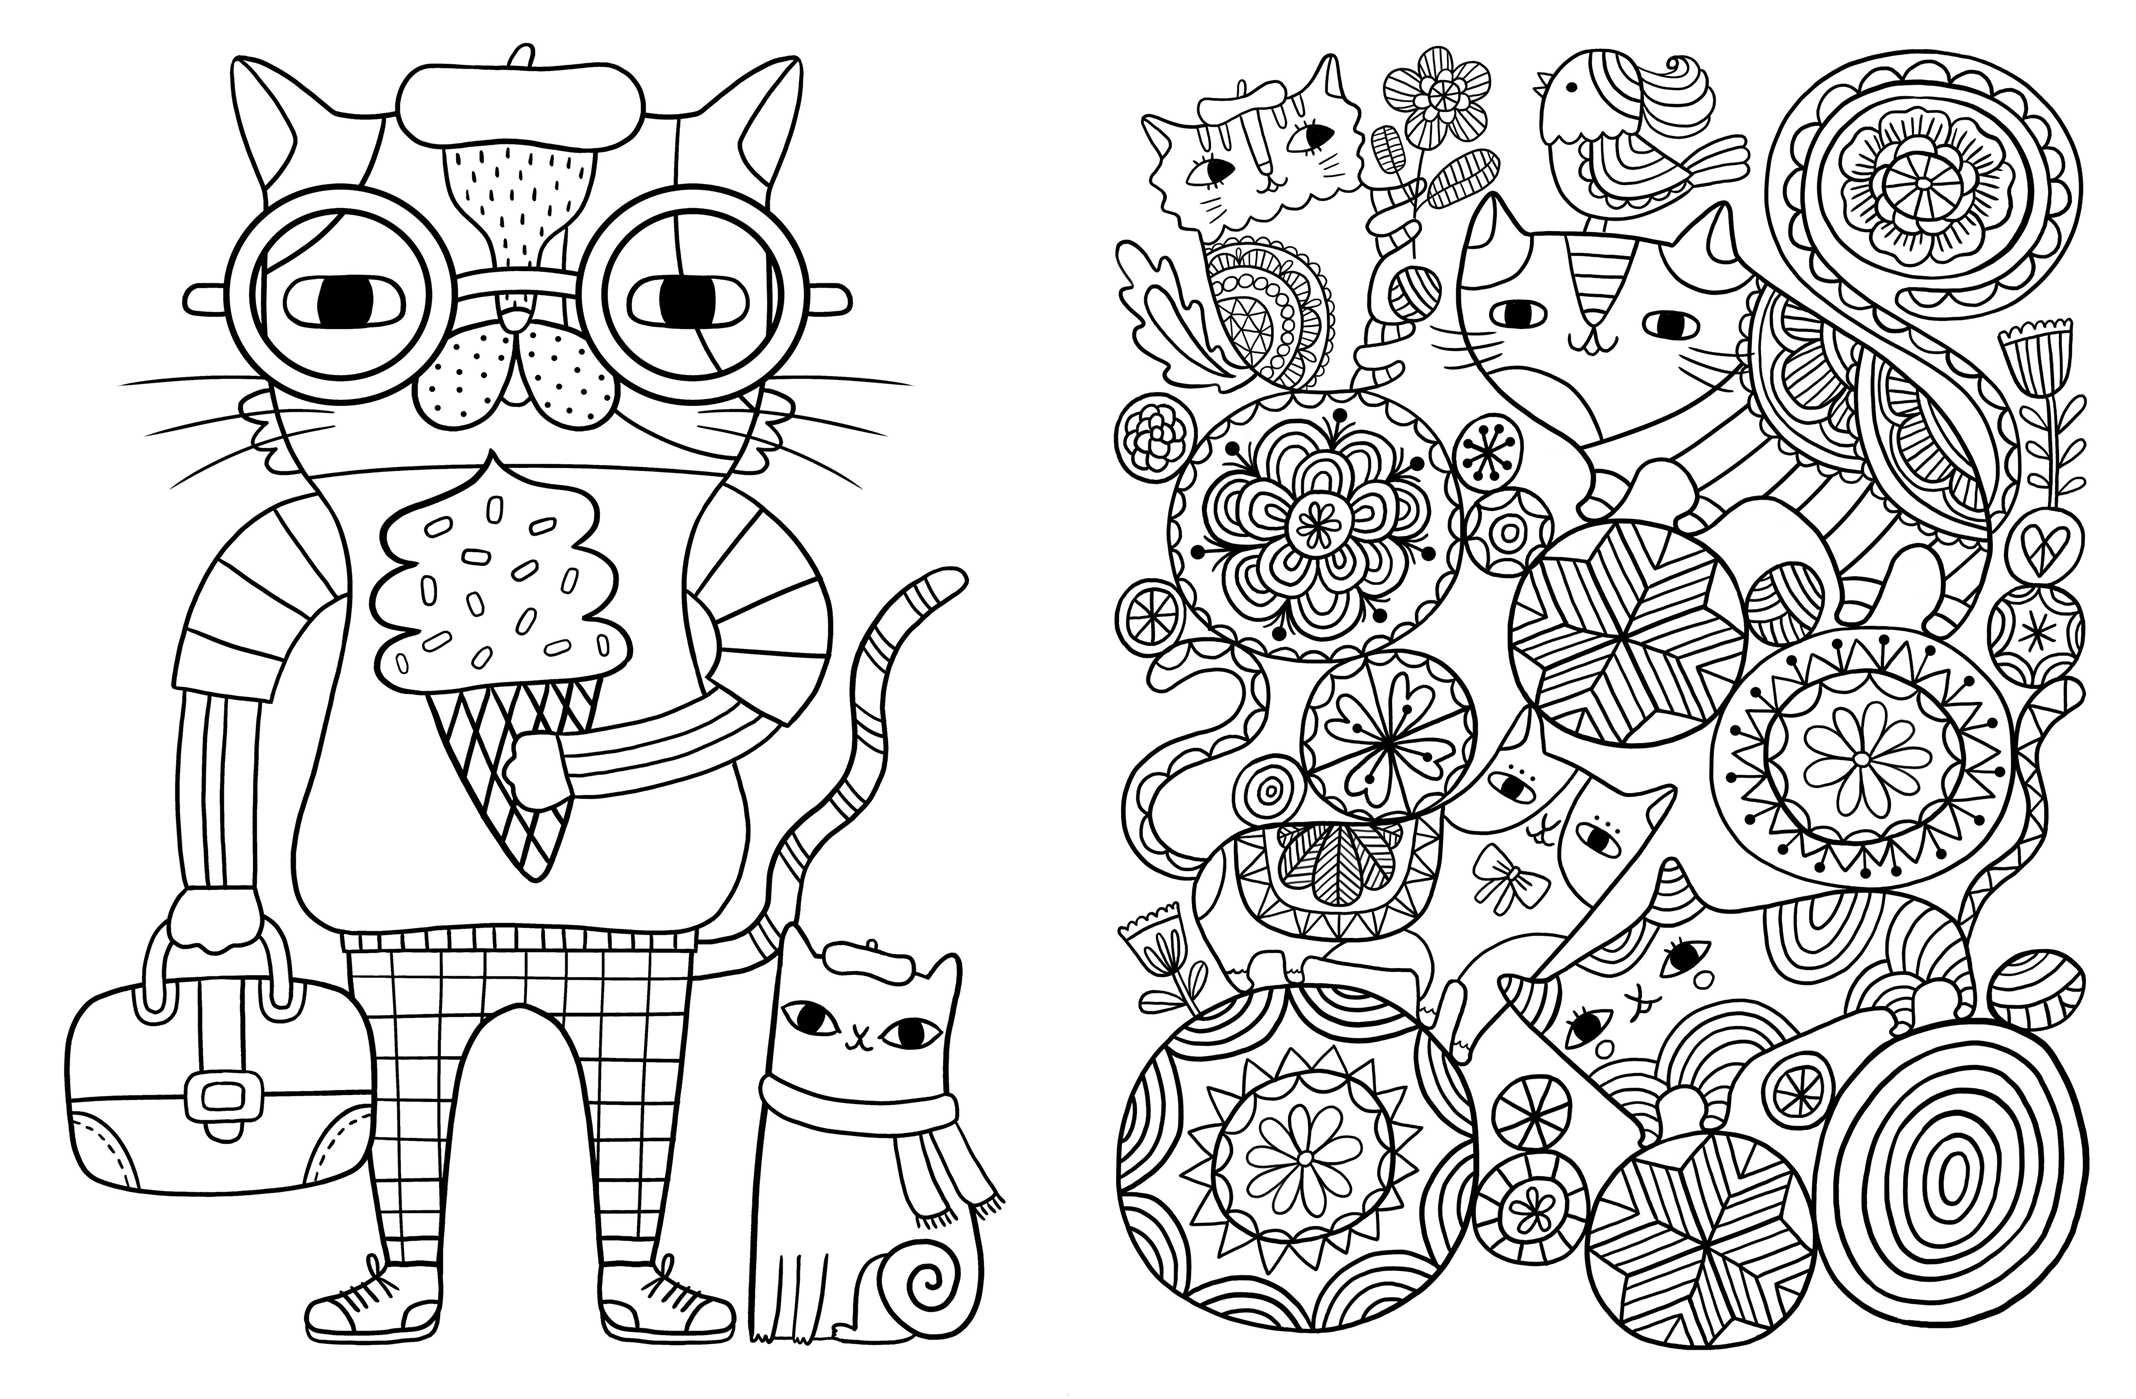 Posh Adult Coloring Book Cats Kittens For Comfort Creativity Amazonca Flora Chang Books